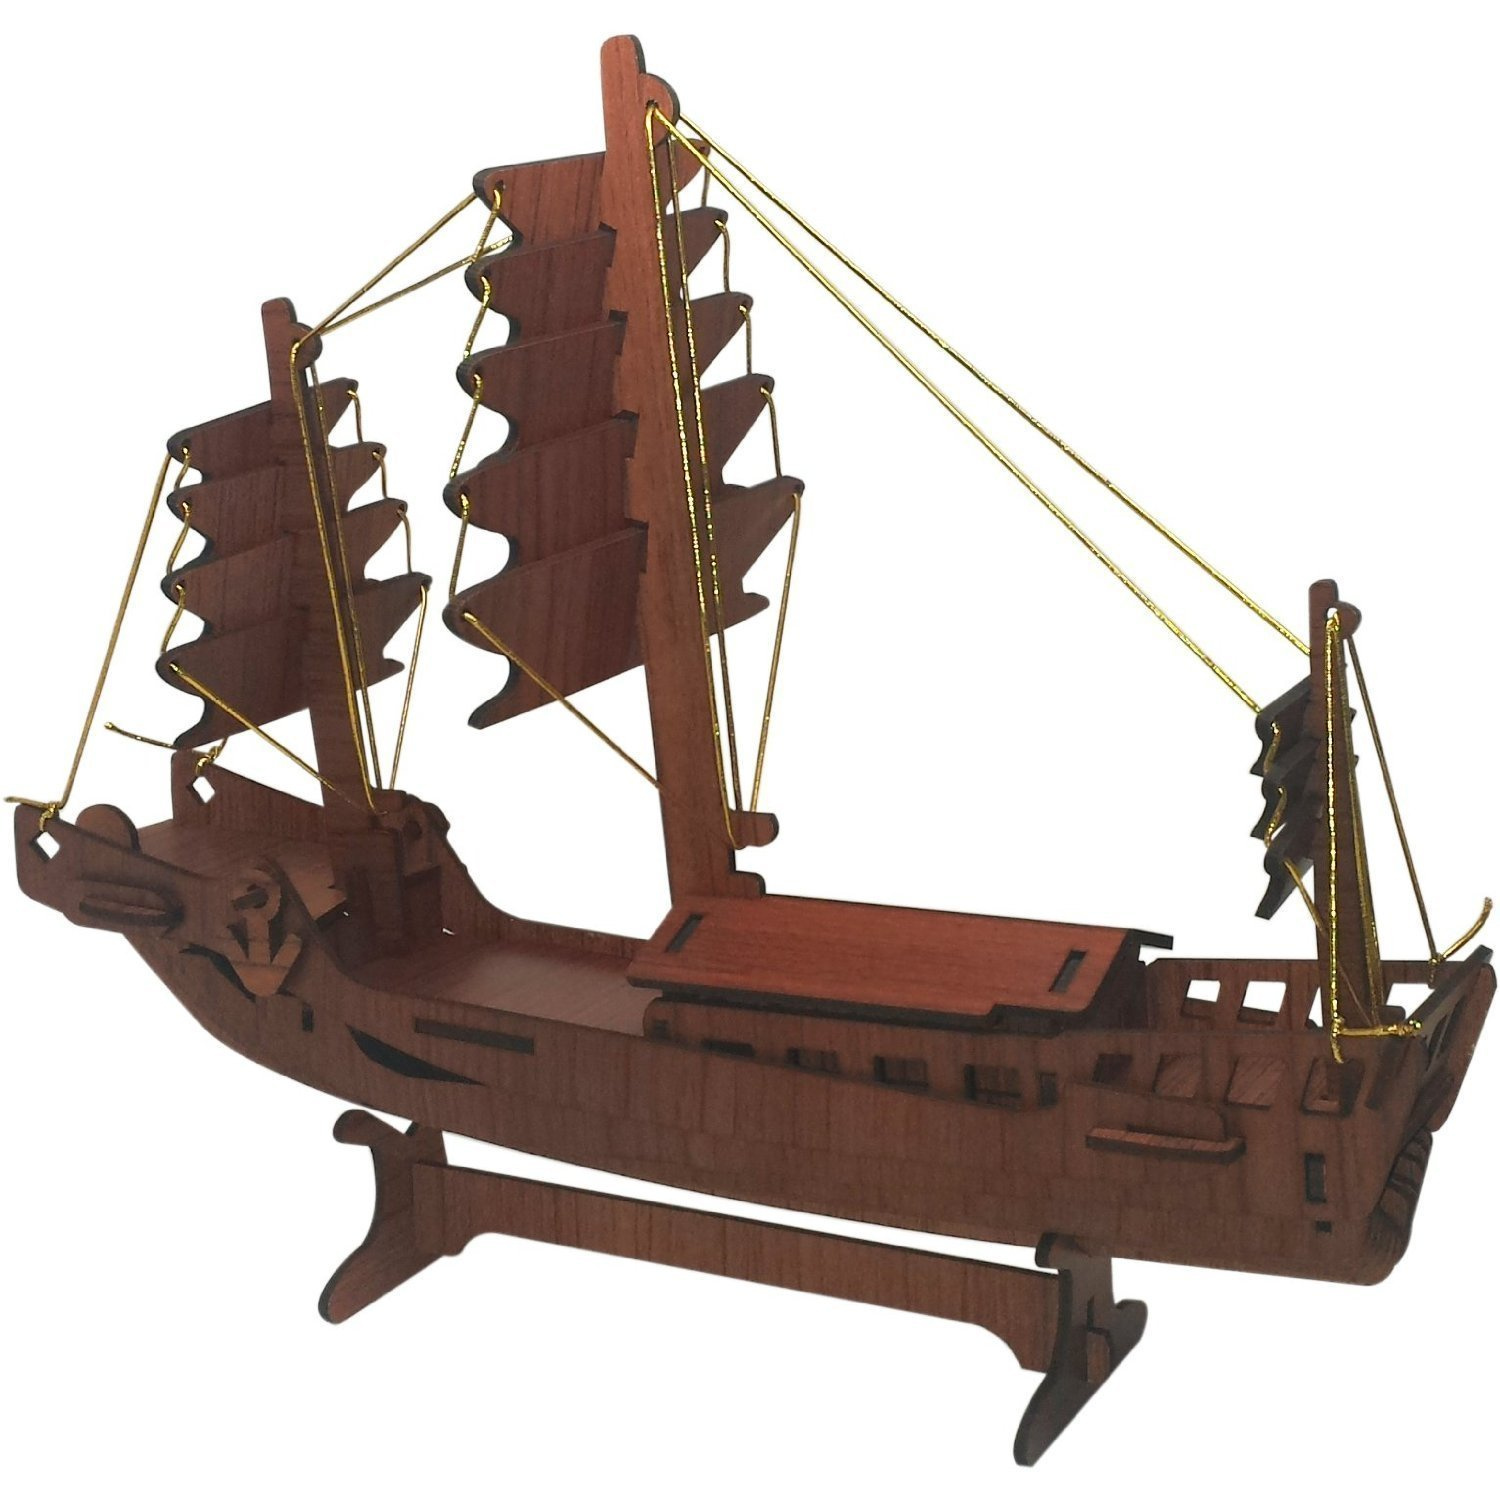 Rosewood Puzzles Inc. Boat 3D Puzzle - Rosewood Color Fun Mind-Challenging 3D Puzzle!